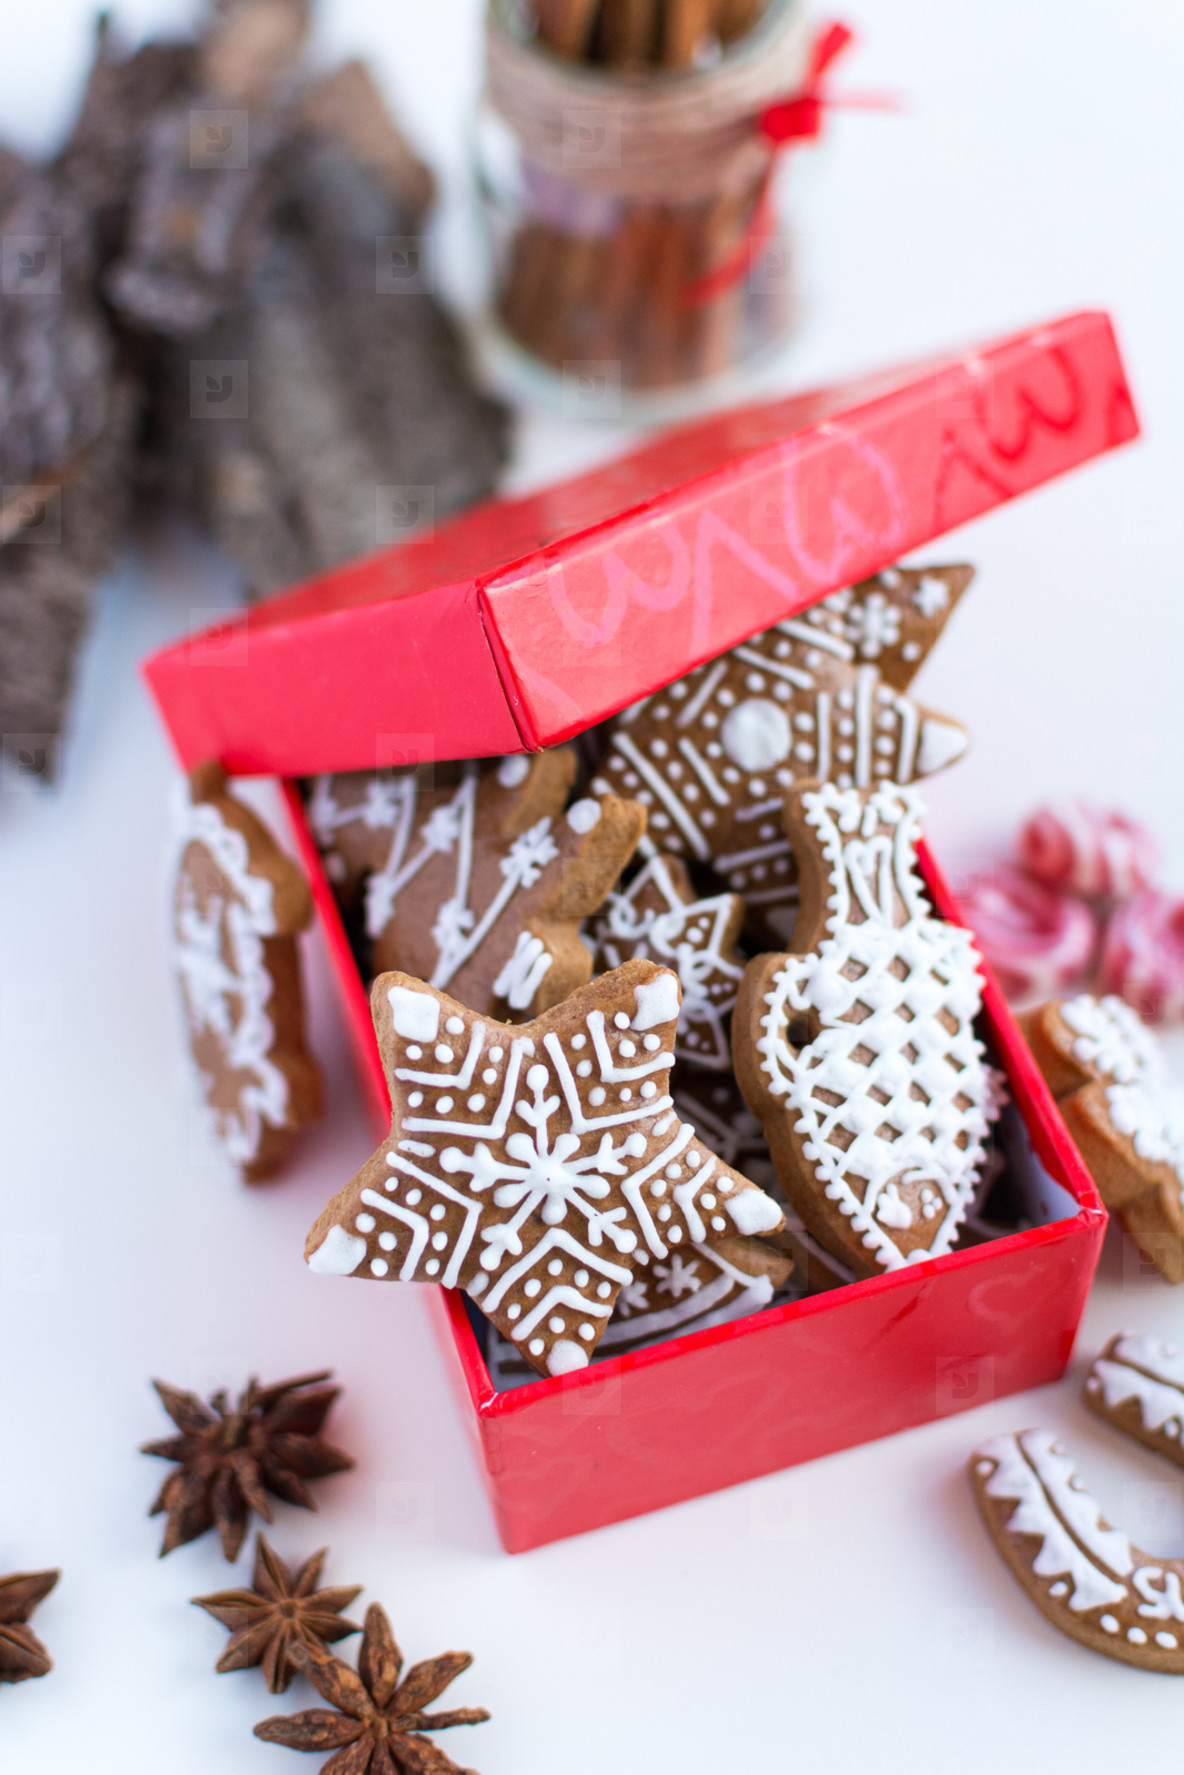 Gingerbread cookies in gift box